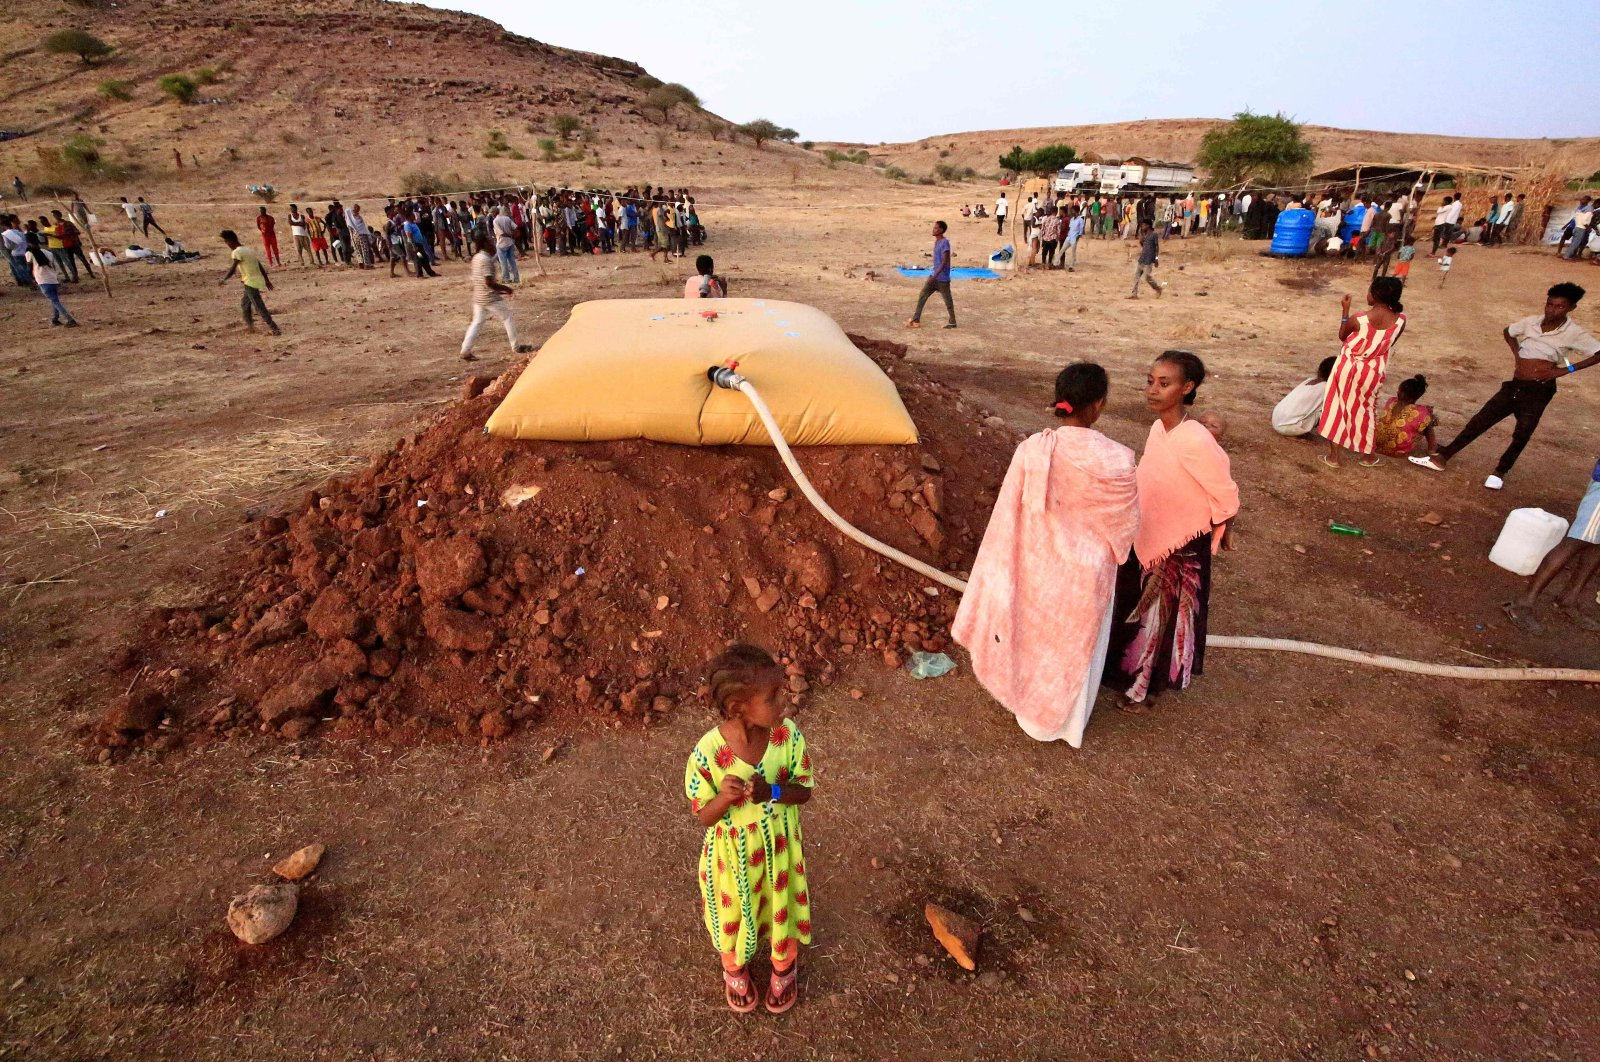 Ethiopian refugees who fled fighting in Tigray province are pictured at the Um Rakuba camp in Sudan's eastern Gedaref province, Nov. 19, 2020. (AFP Photo)